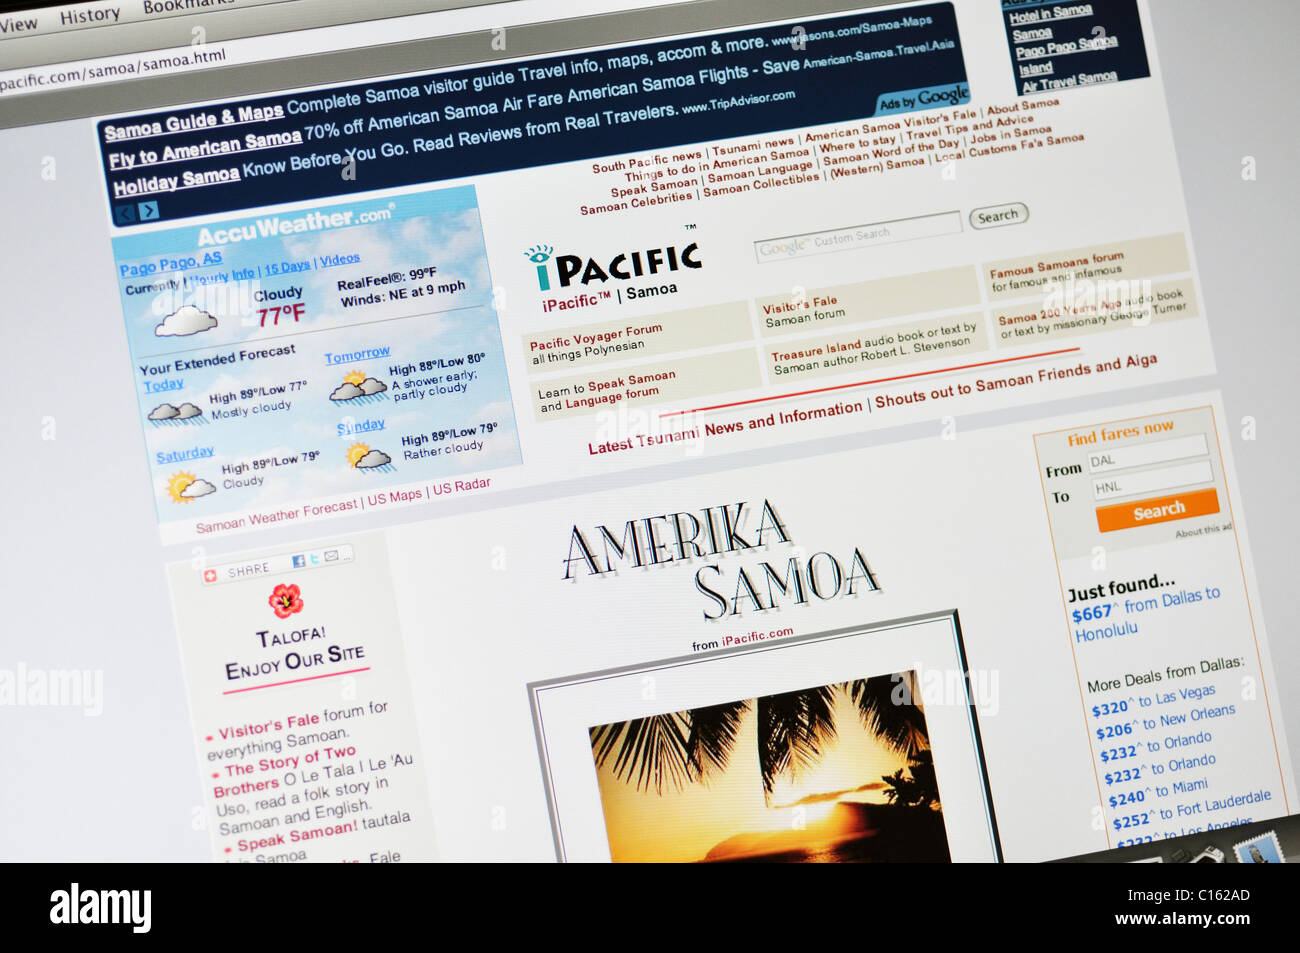 American Samoa official state tourism website - Stock Image